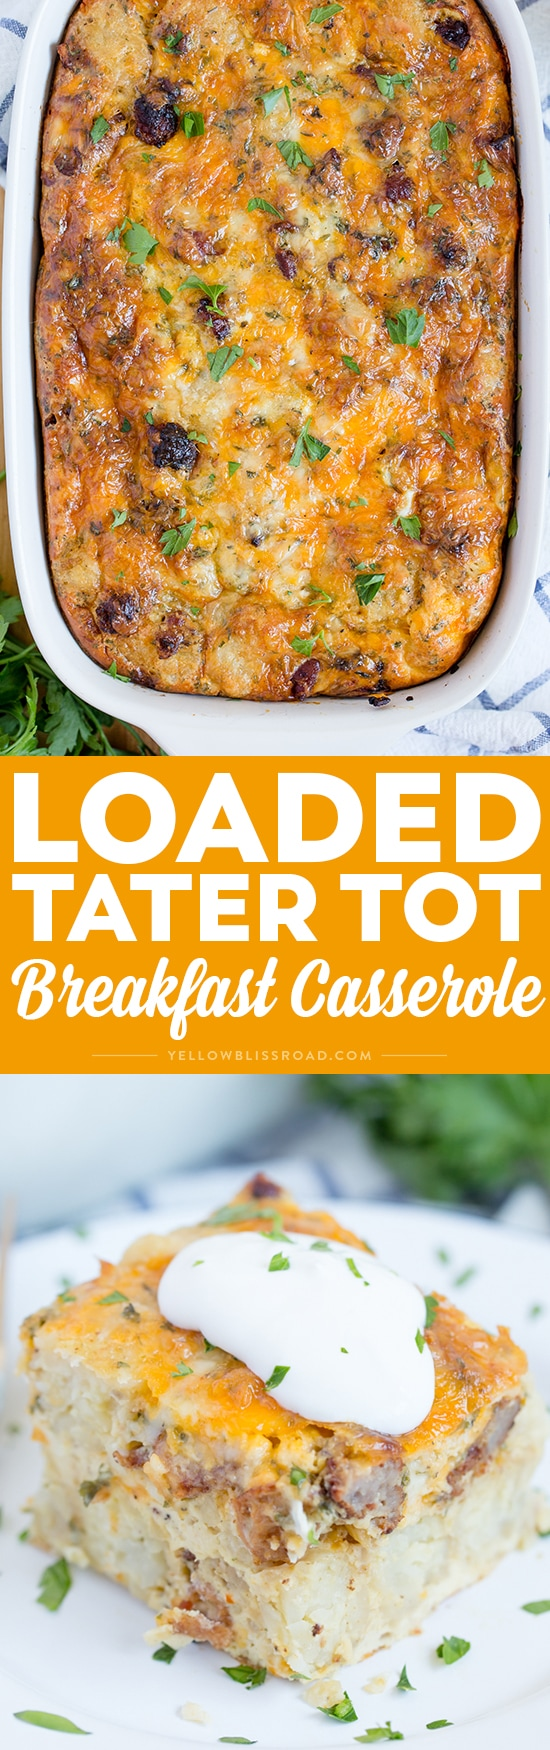 Loaded Tater Tot Breakfast Casserole with tons of meat, cheese, eggs and sour cream! Perfect as a make-ahead holiday breakfast or breakfast for dinner option!